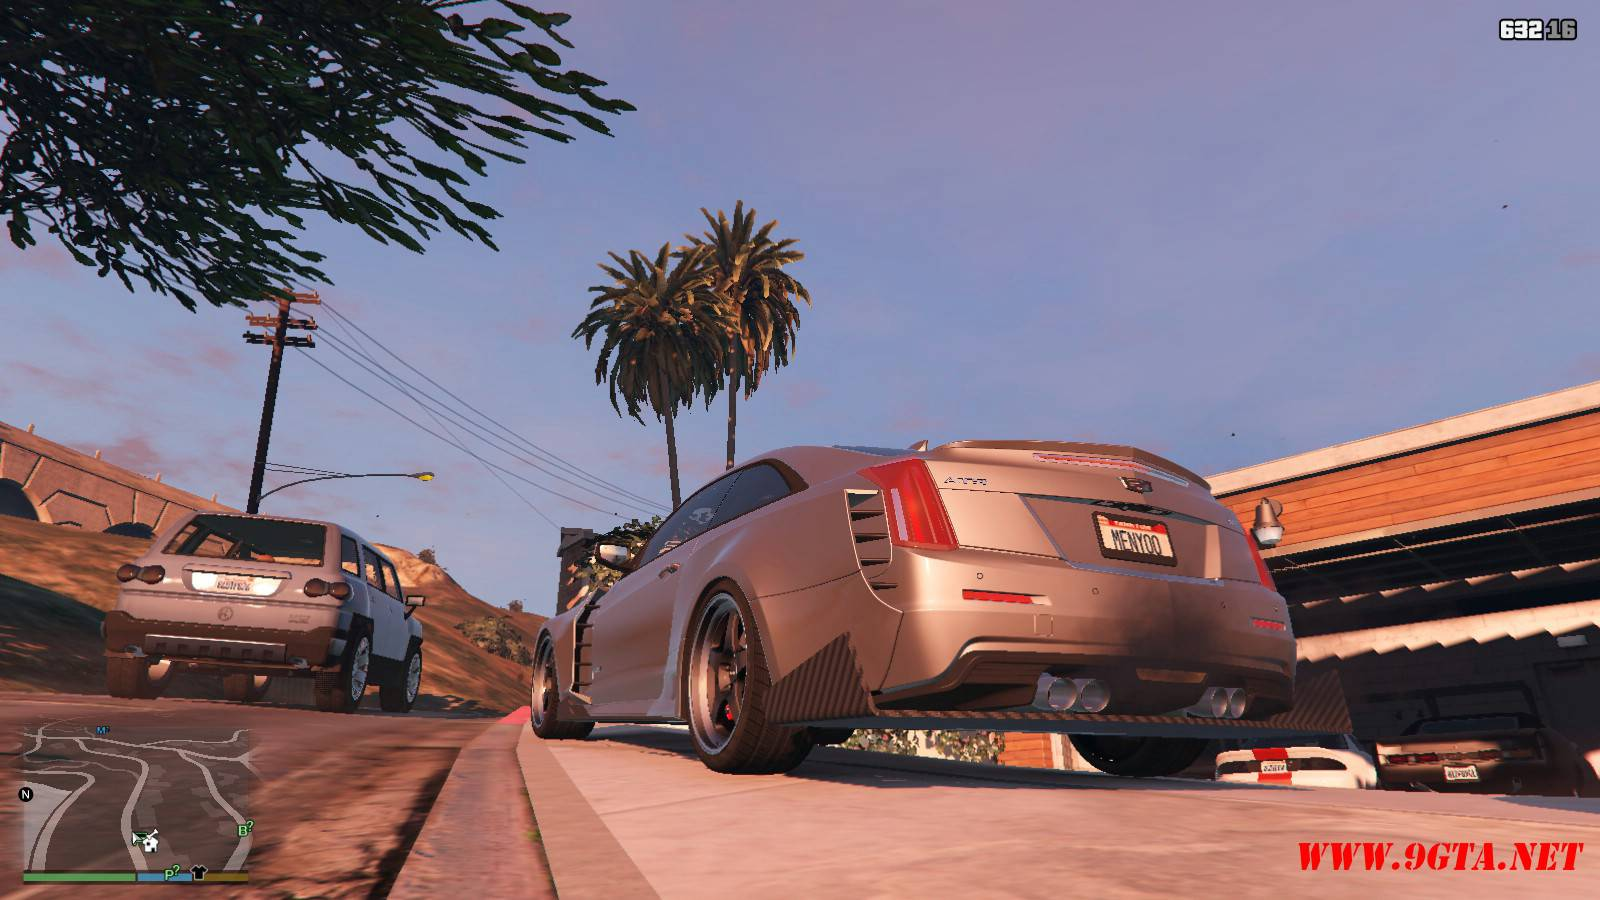 2016 Cadillac ATS-V Forza Edition Mod For GTA5 (3)